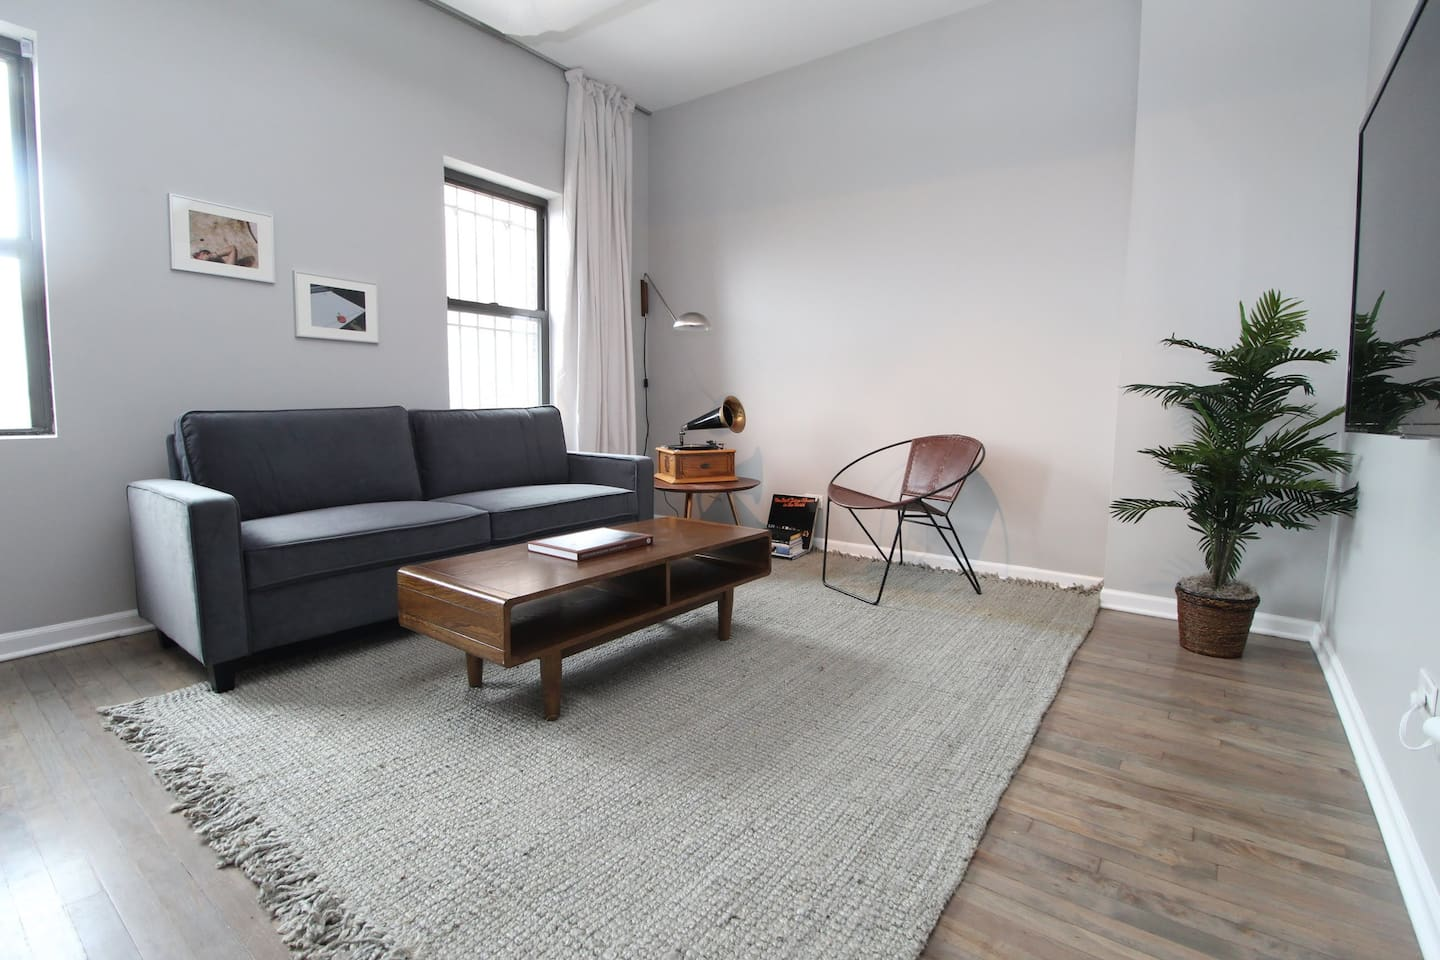 """""""The location is fantastic for exploring Wicker Park, as well as other Chicago attractions. Super walkable neighborhood with lots of great restaurants and coffee shops."""""""